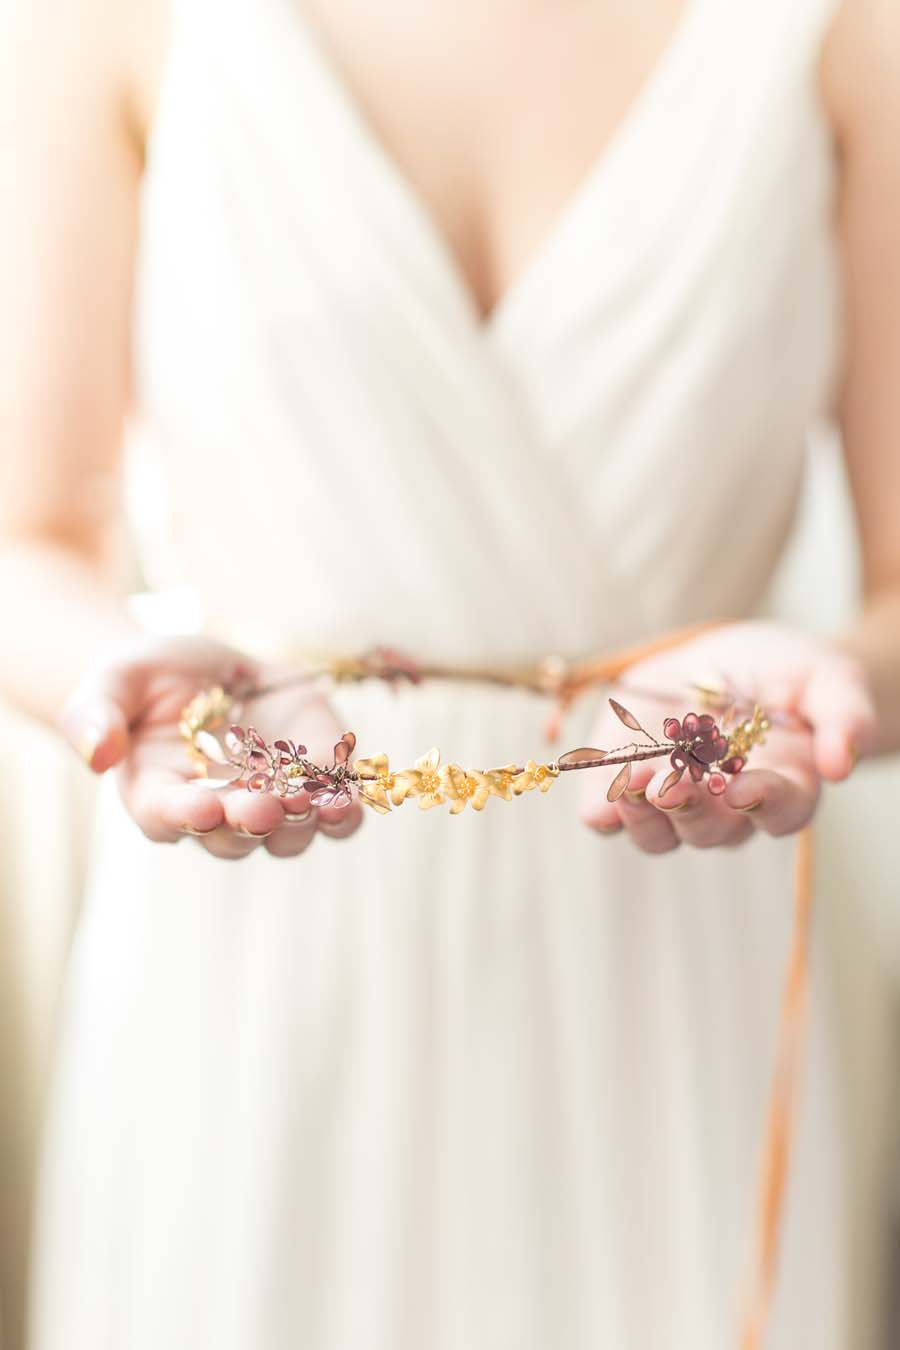 Ethereal Bridal Adornments: Victoria Millésime launches her 2016 Gold Dust Collection!